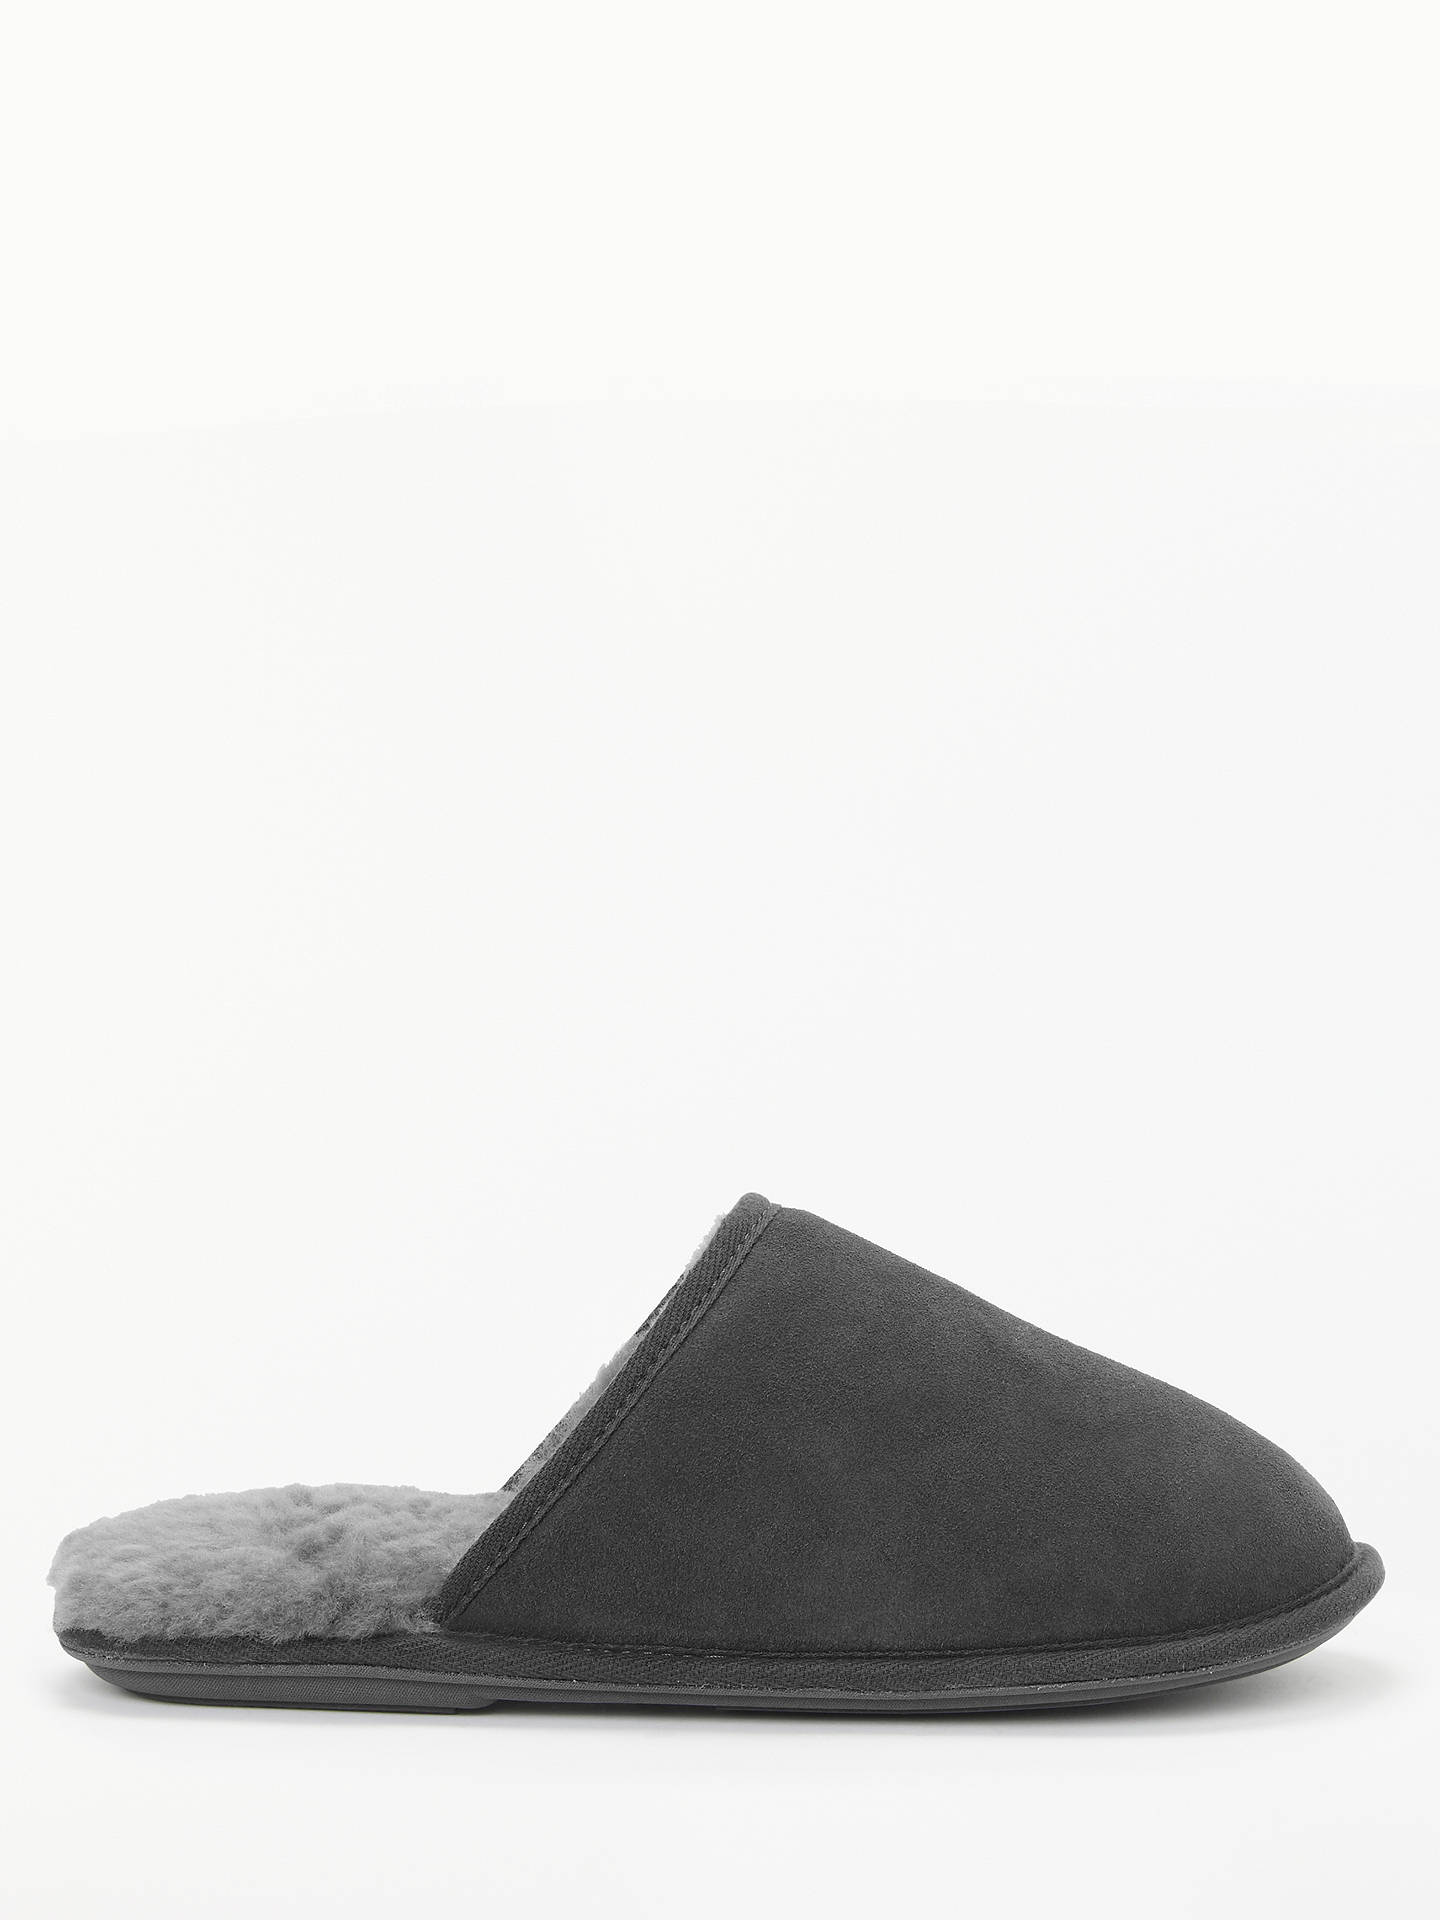 BuyJohn Lewis Sheepskin Mule Slippers, Grey, S Online at johnlewis.com